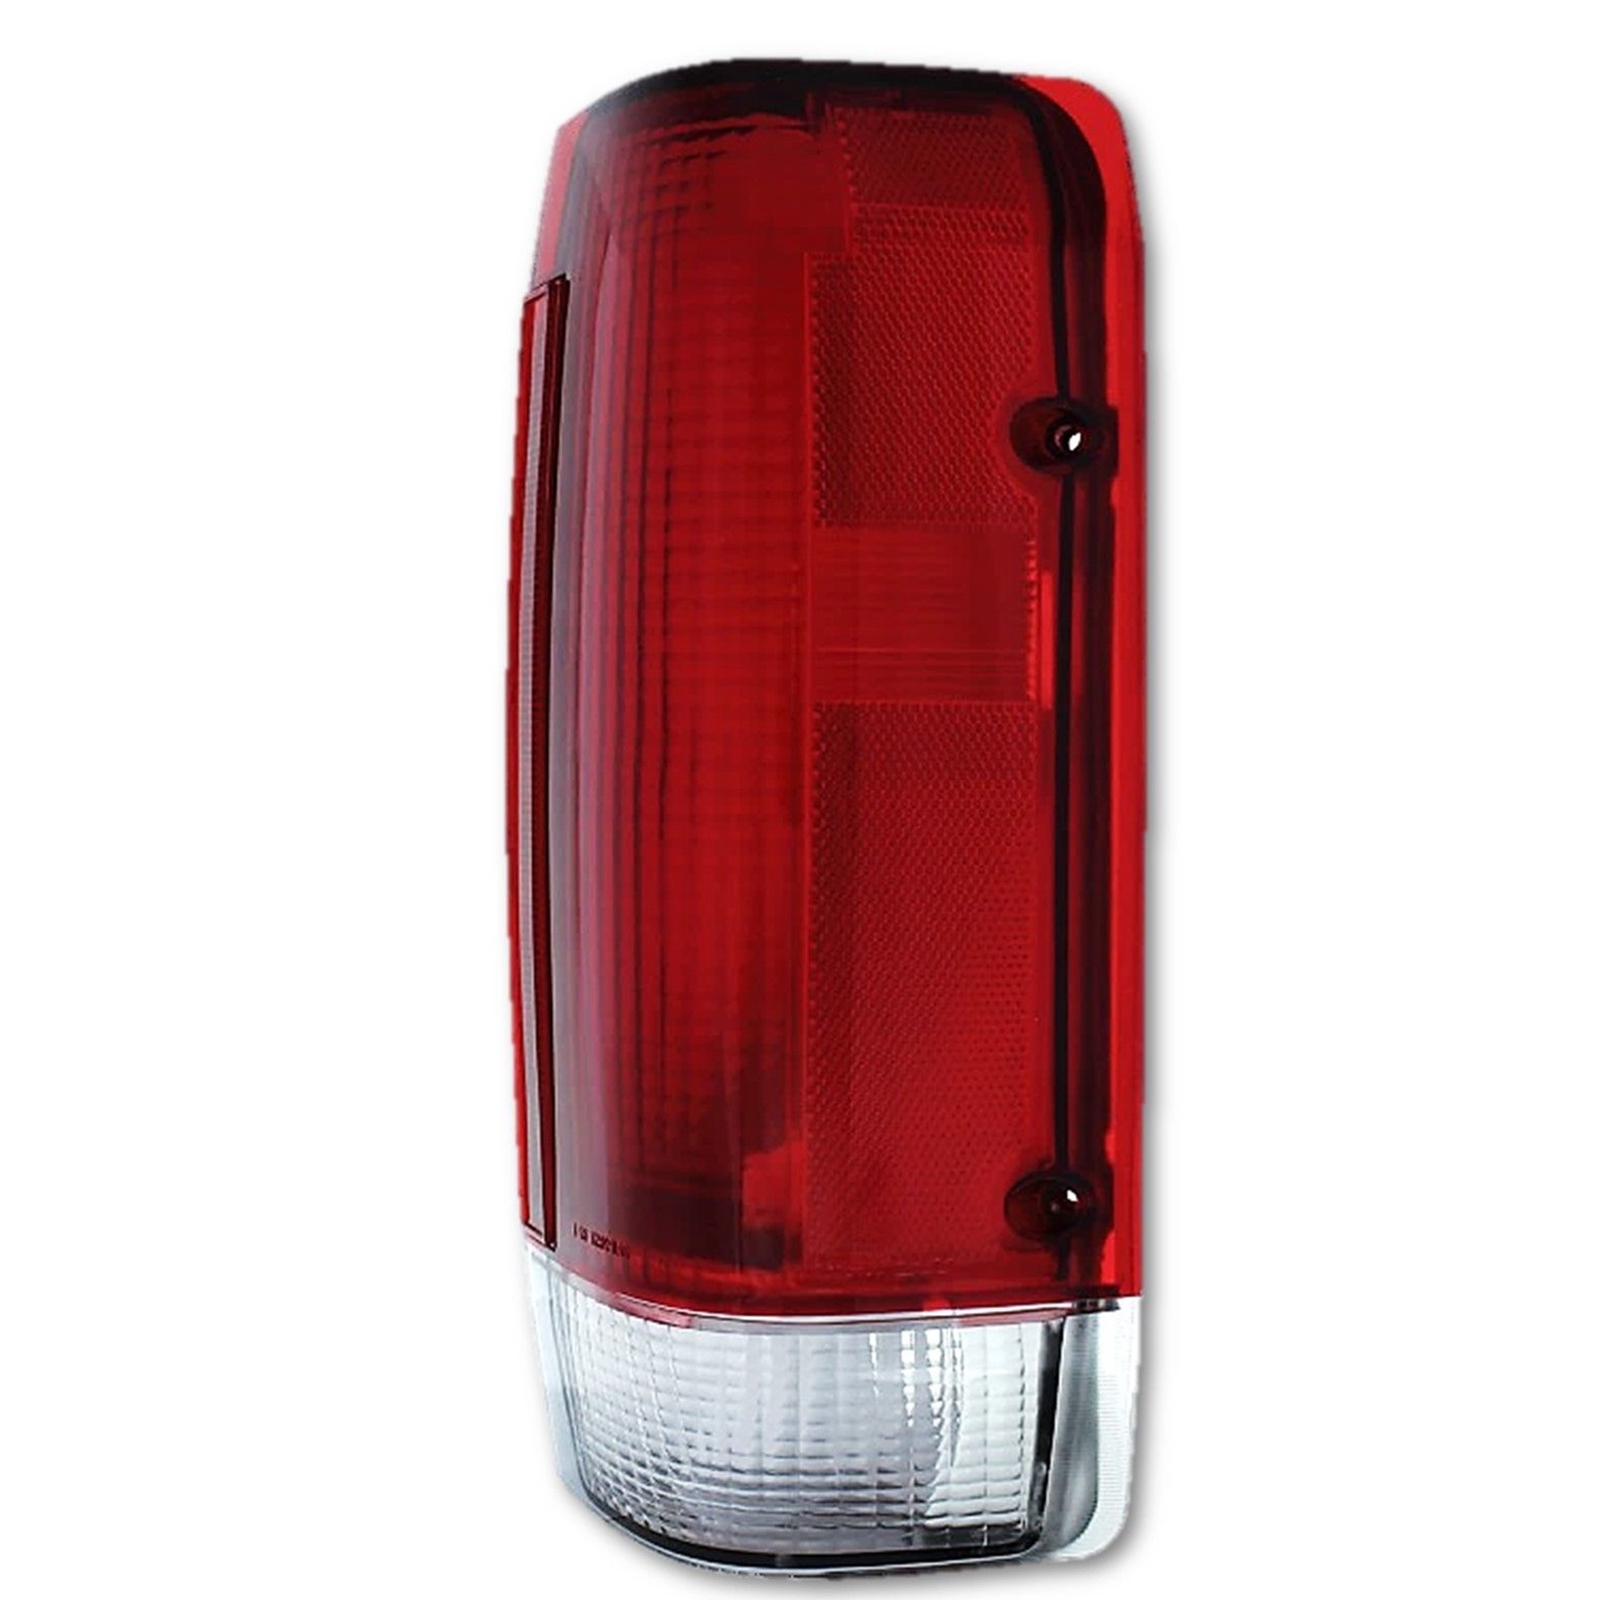 hight resolution of details about 87 88 89 ford f 150 250 styleside truck bronco tail light lens assembly right